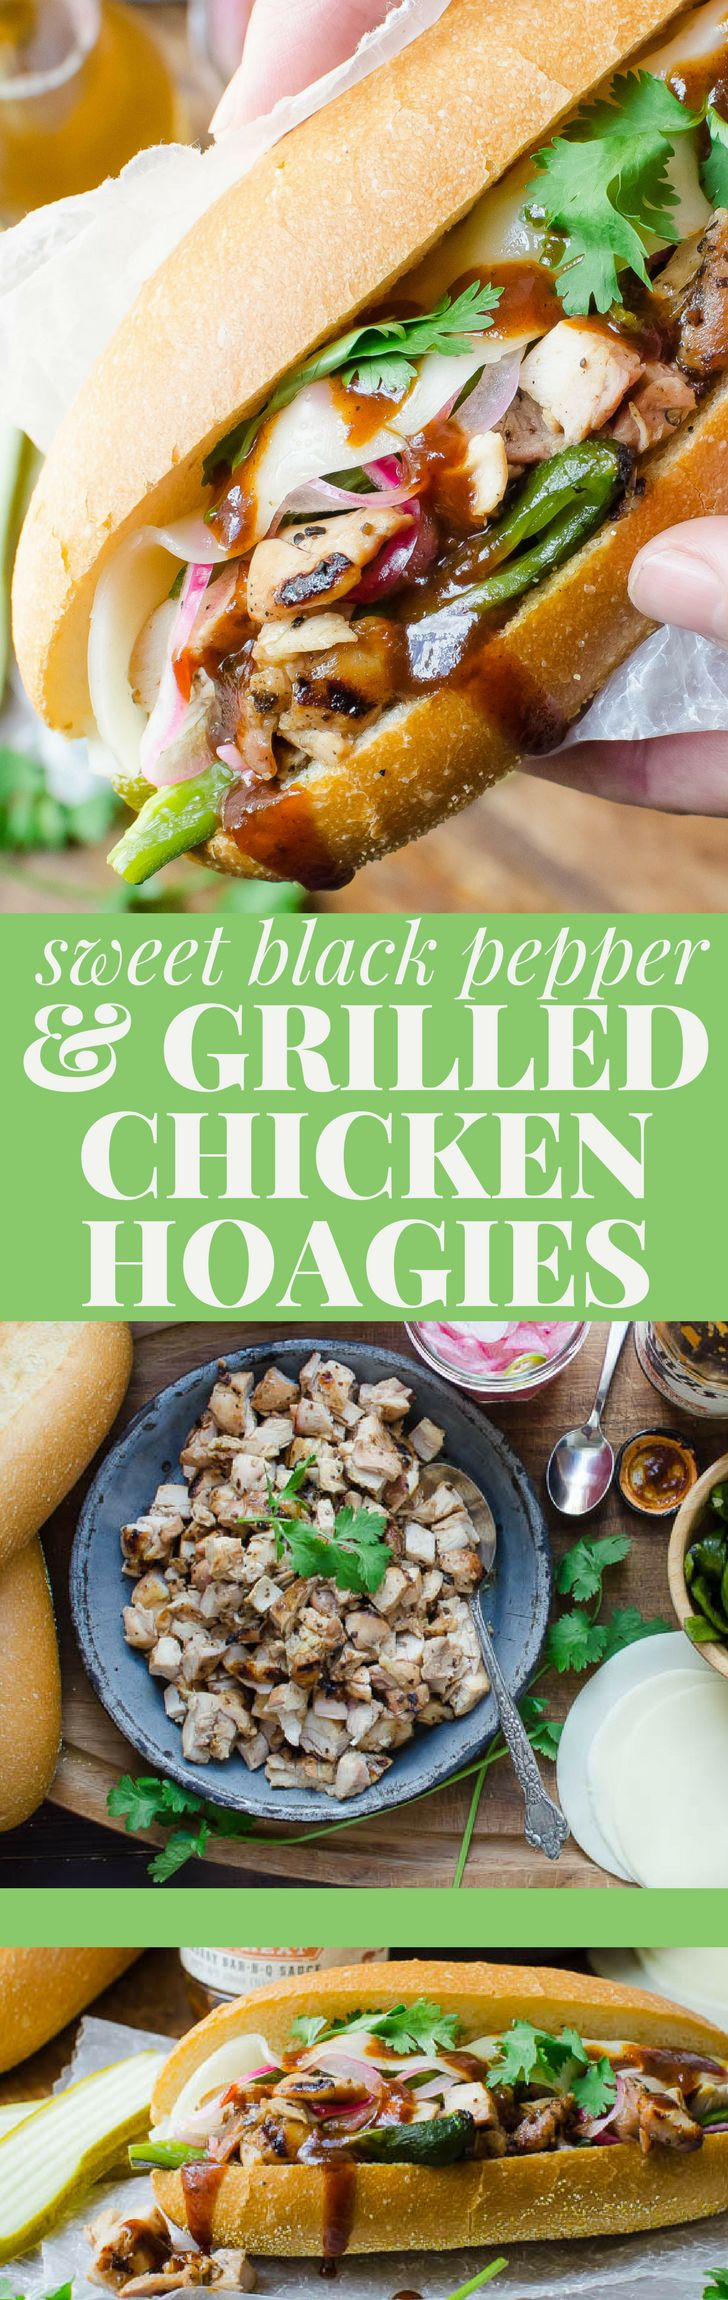 This easy grilled chicken tailgate recipe is a hot chicken sub on steroids and if you're looking for a make-ahead tailgate recipe, these Sweet Black Pepper Grilled Chicken Hoagies are it. Prep at home - grill at the game! #chicken #chickenthighs #grilledchickenthighs #tailgatingrecipes #easytailgaterecipes #hoagie #sandwich #submarine #sub #chickensub #chickenhoagie #grilledchickenhoagie #easytailgatingideas